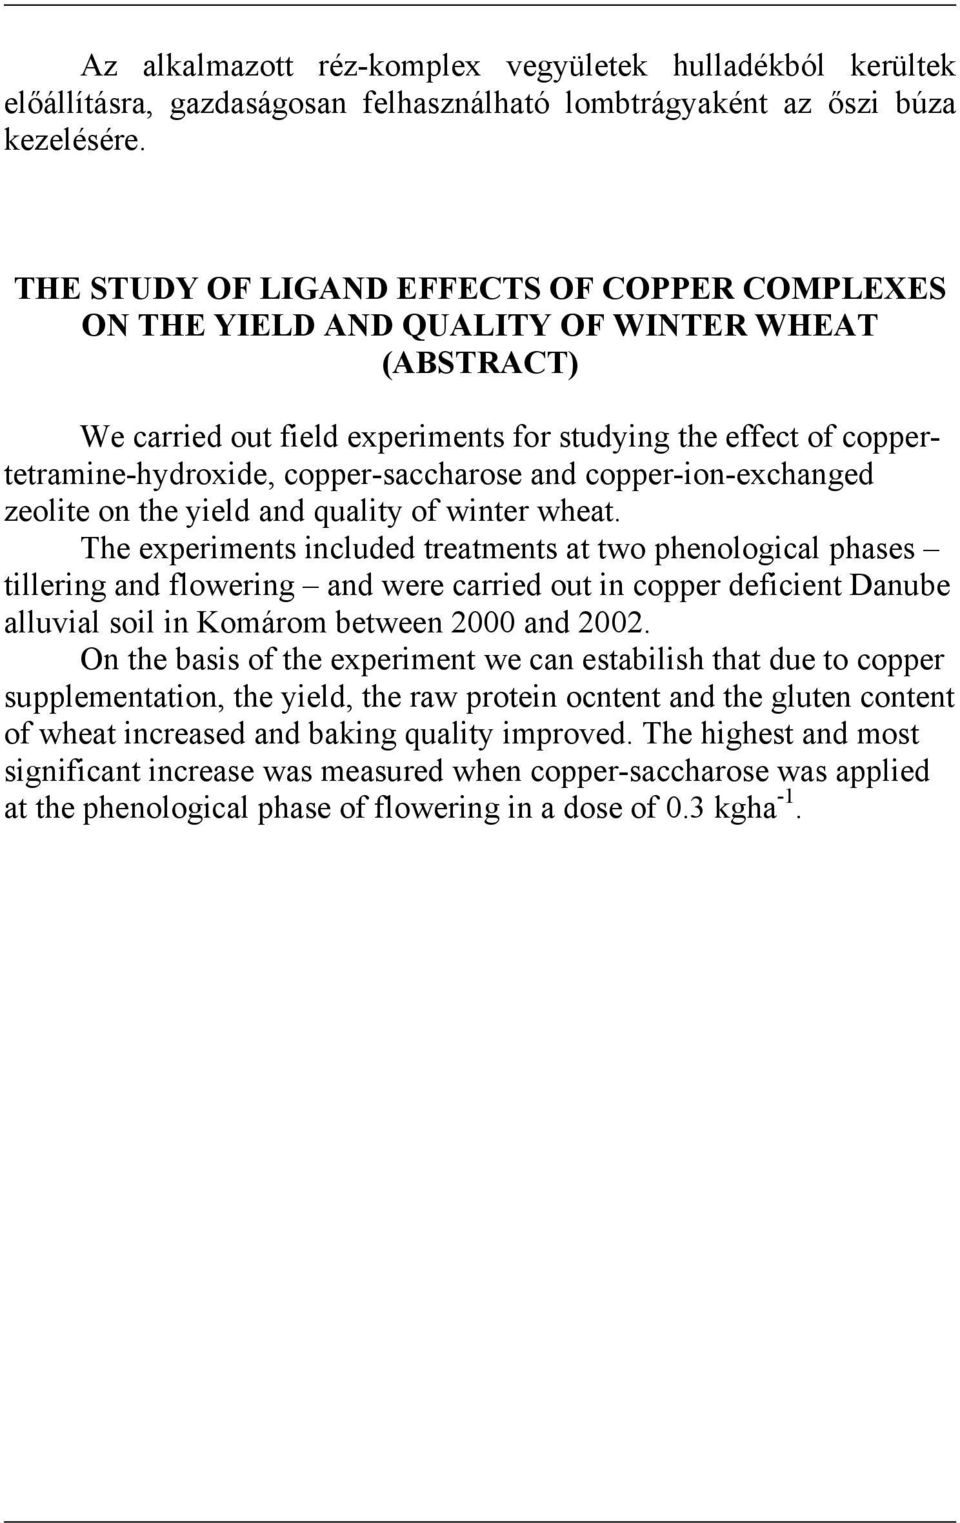 copper-saccharose and copper-ion-exchanged zeolite on the yield and quality of winter wheat.